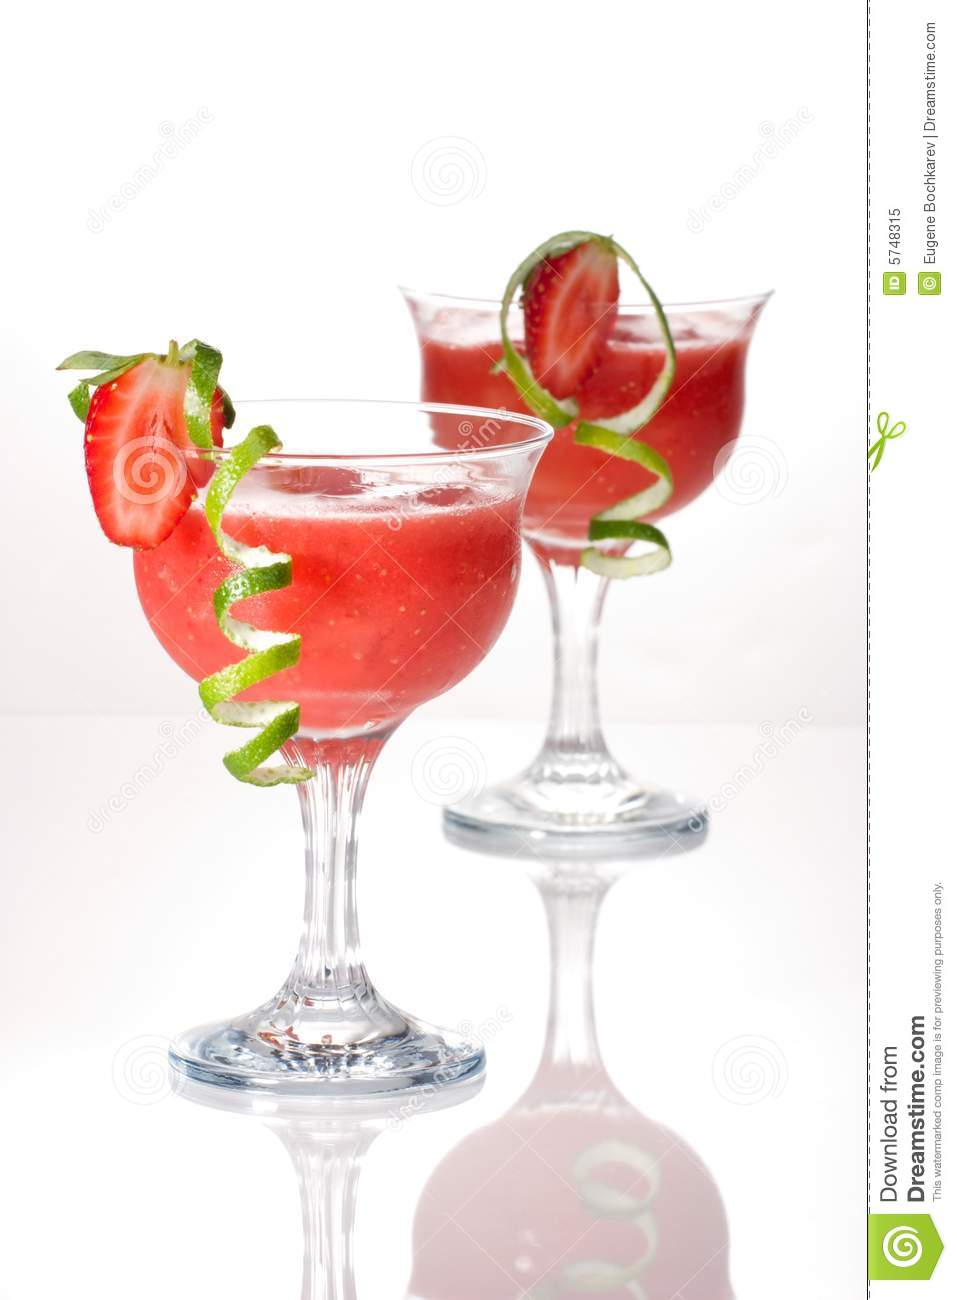 Strawberry daiquiri most popular cocktails serie royalty for Cocktail daiquiri